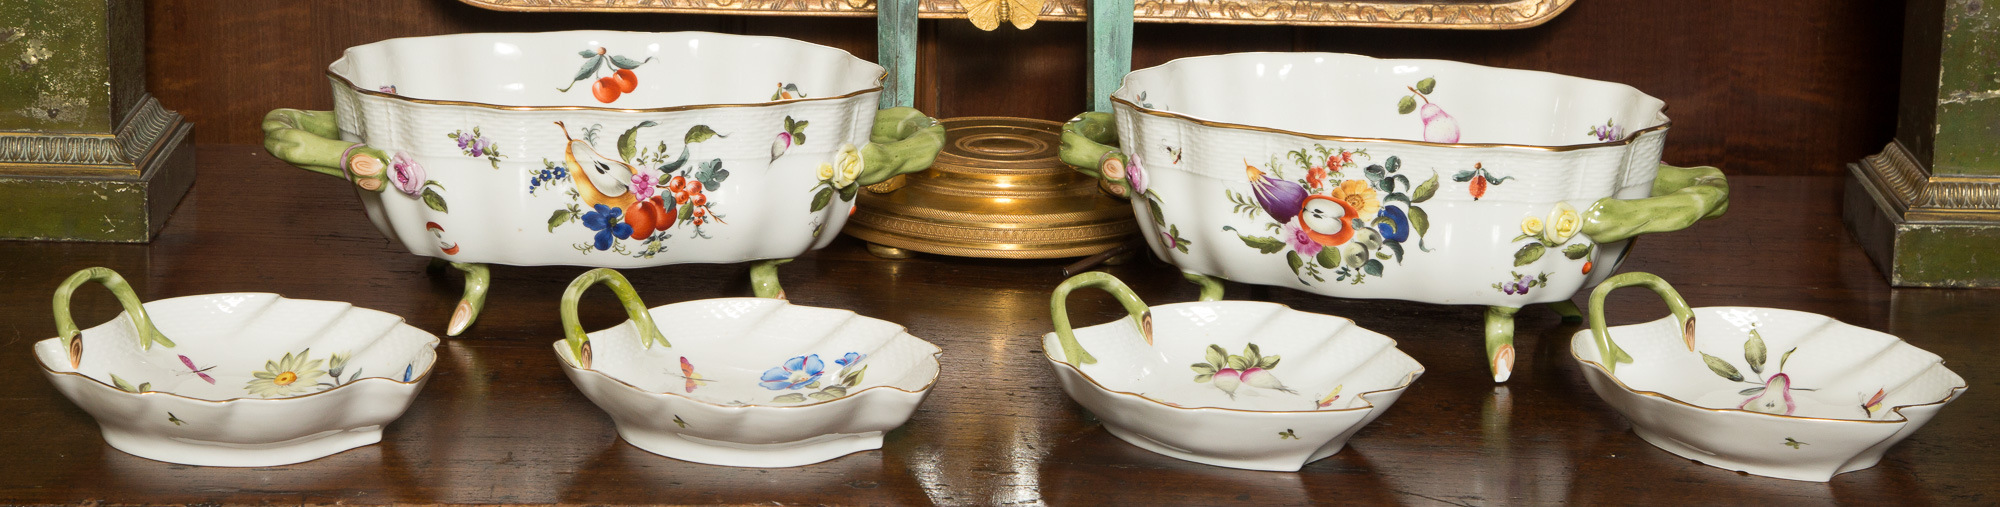 Lot image - Group of Herend Porcelain Tableware